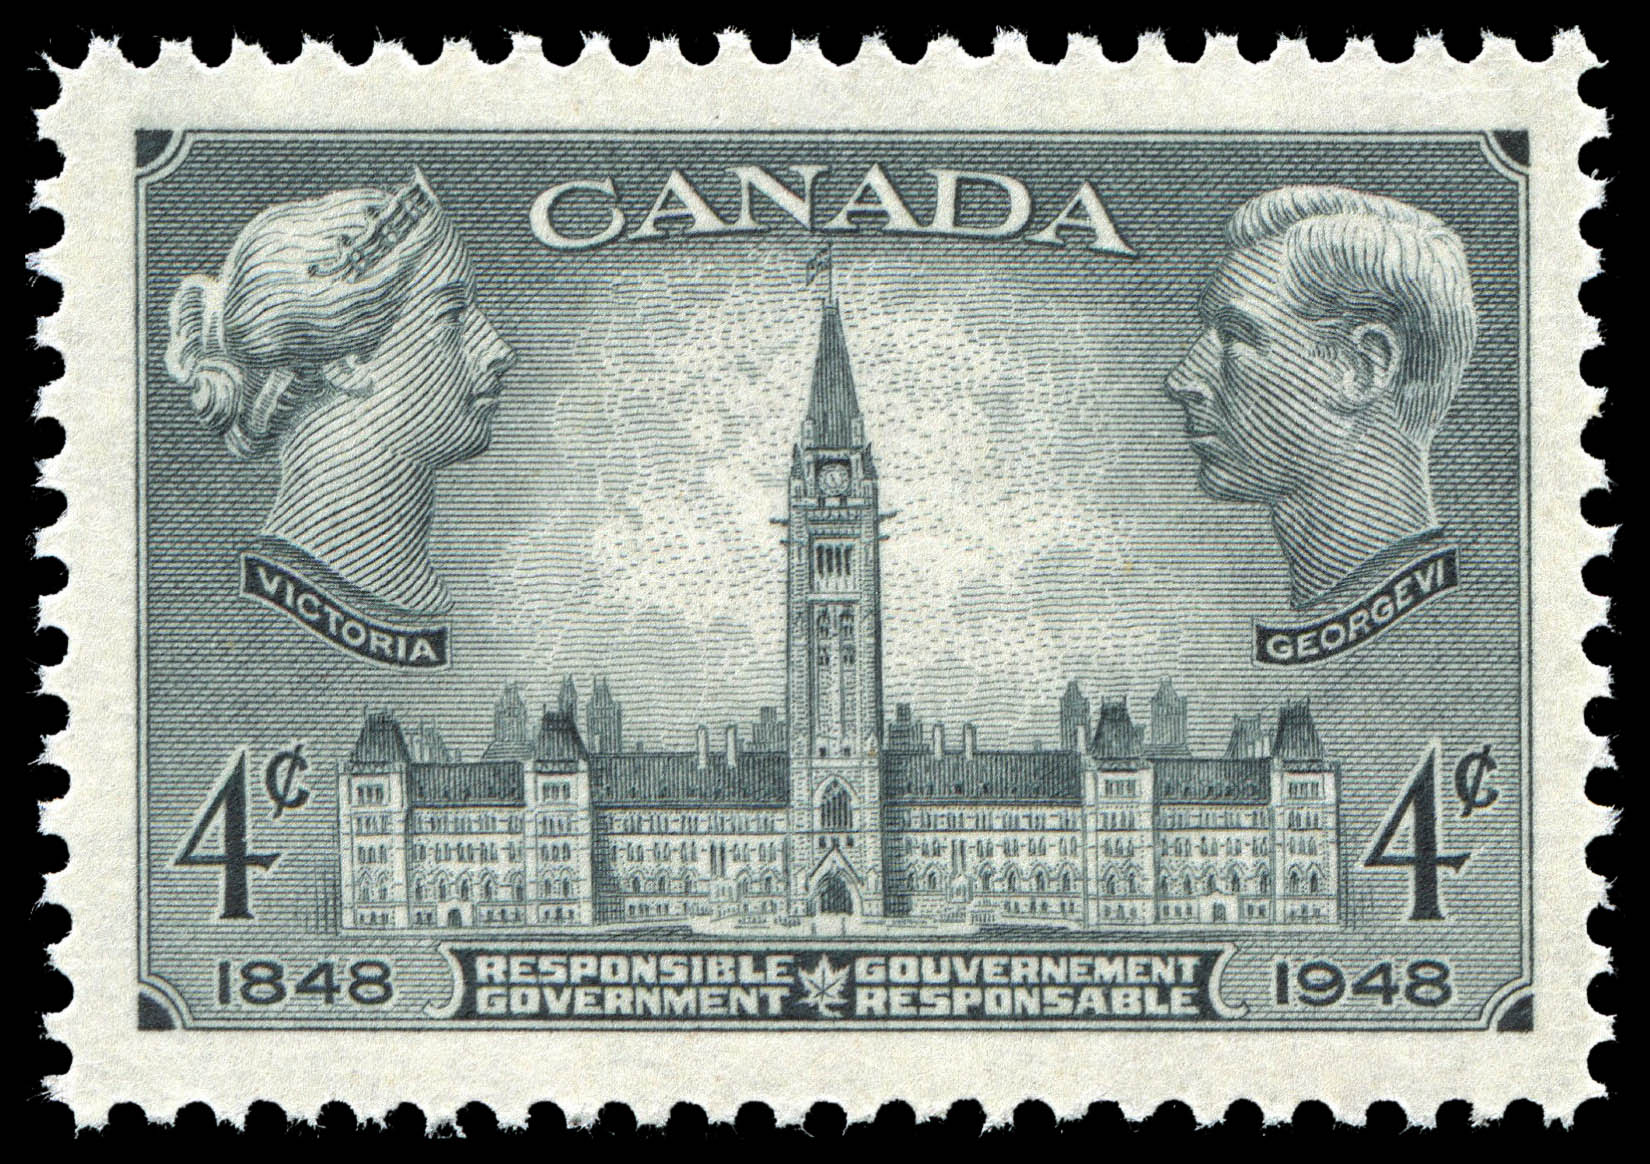 Responsible Government, 1848-1948 Canada Postage Stamp